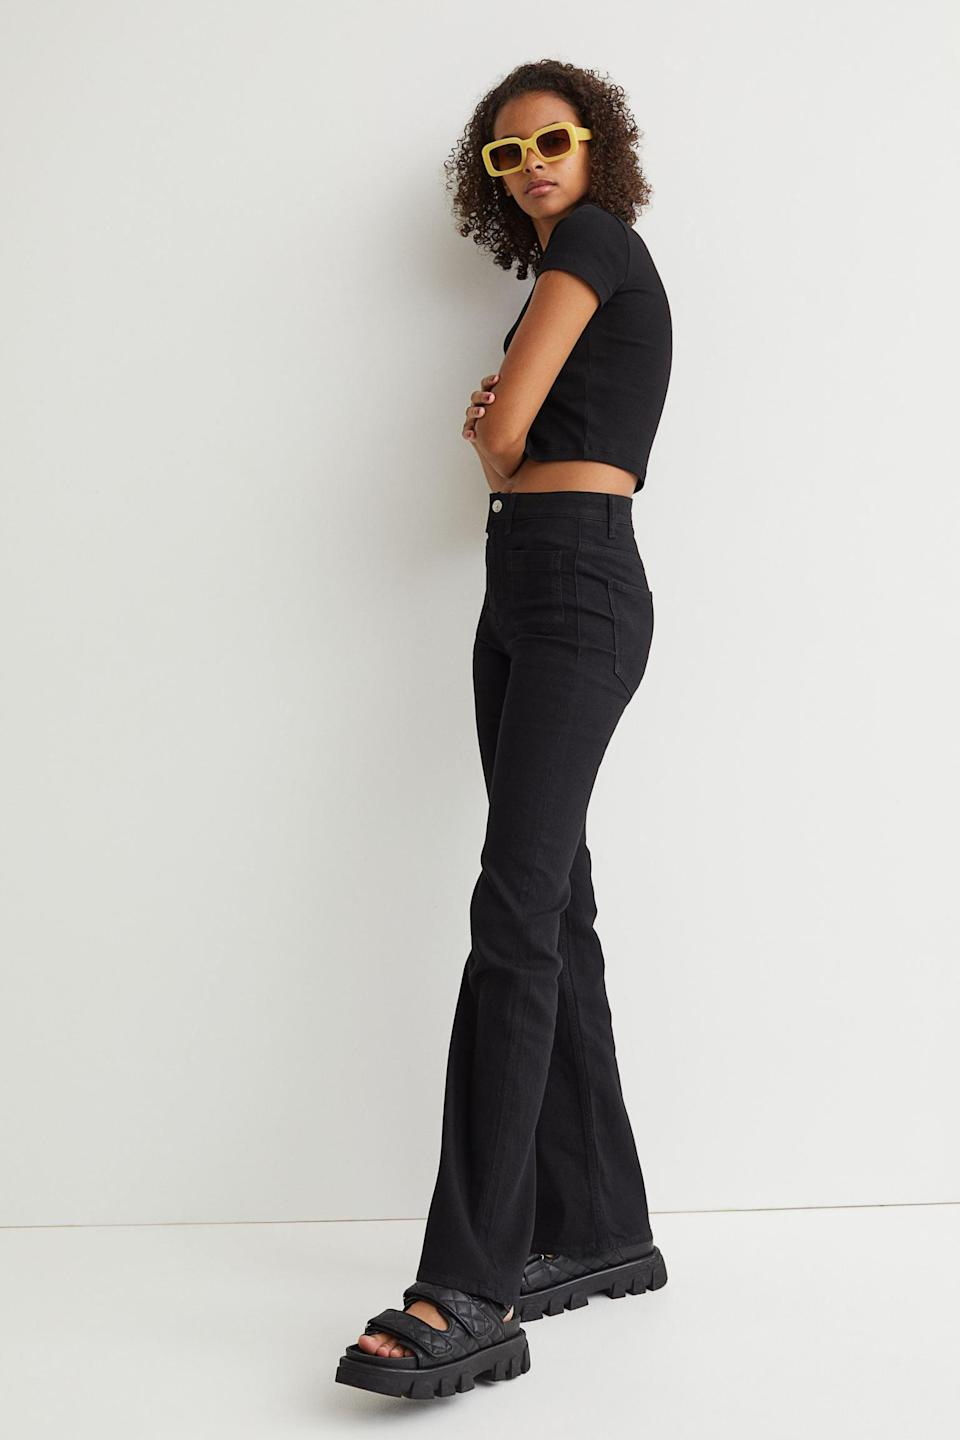 <p>If you're into throw-back flare jeans, well, same. Get in on the tre d with the <span>H&amp;M Flare High Waist Jeans</span> ($25).</p>